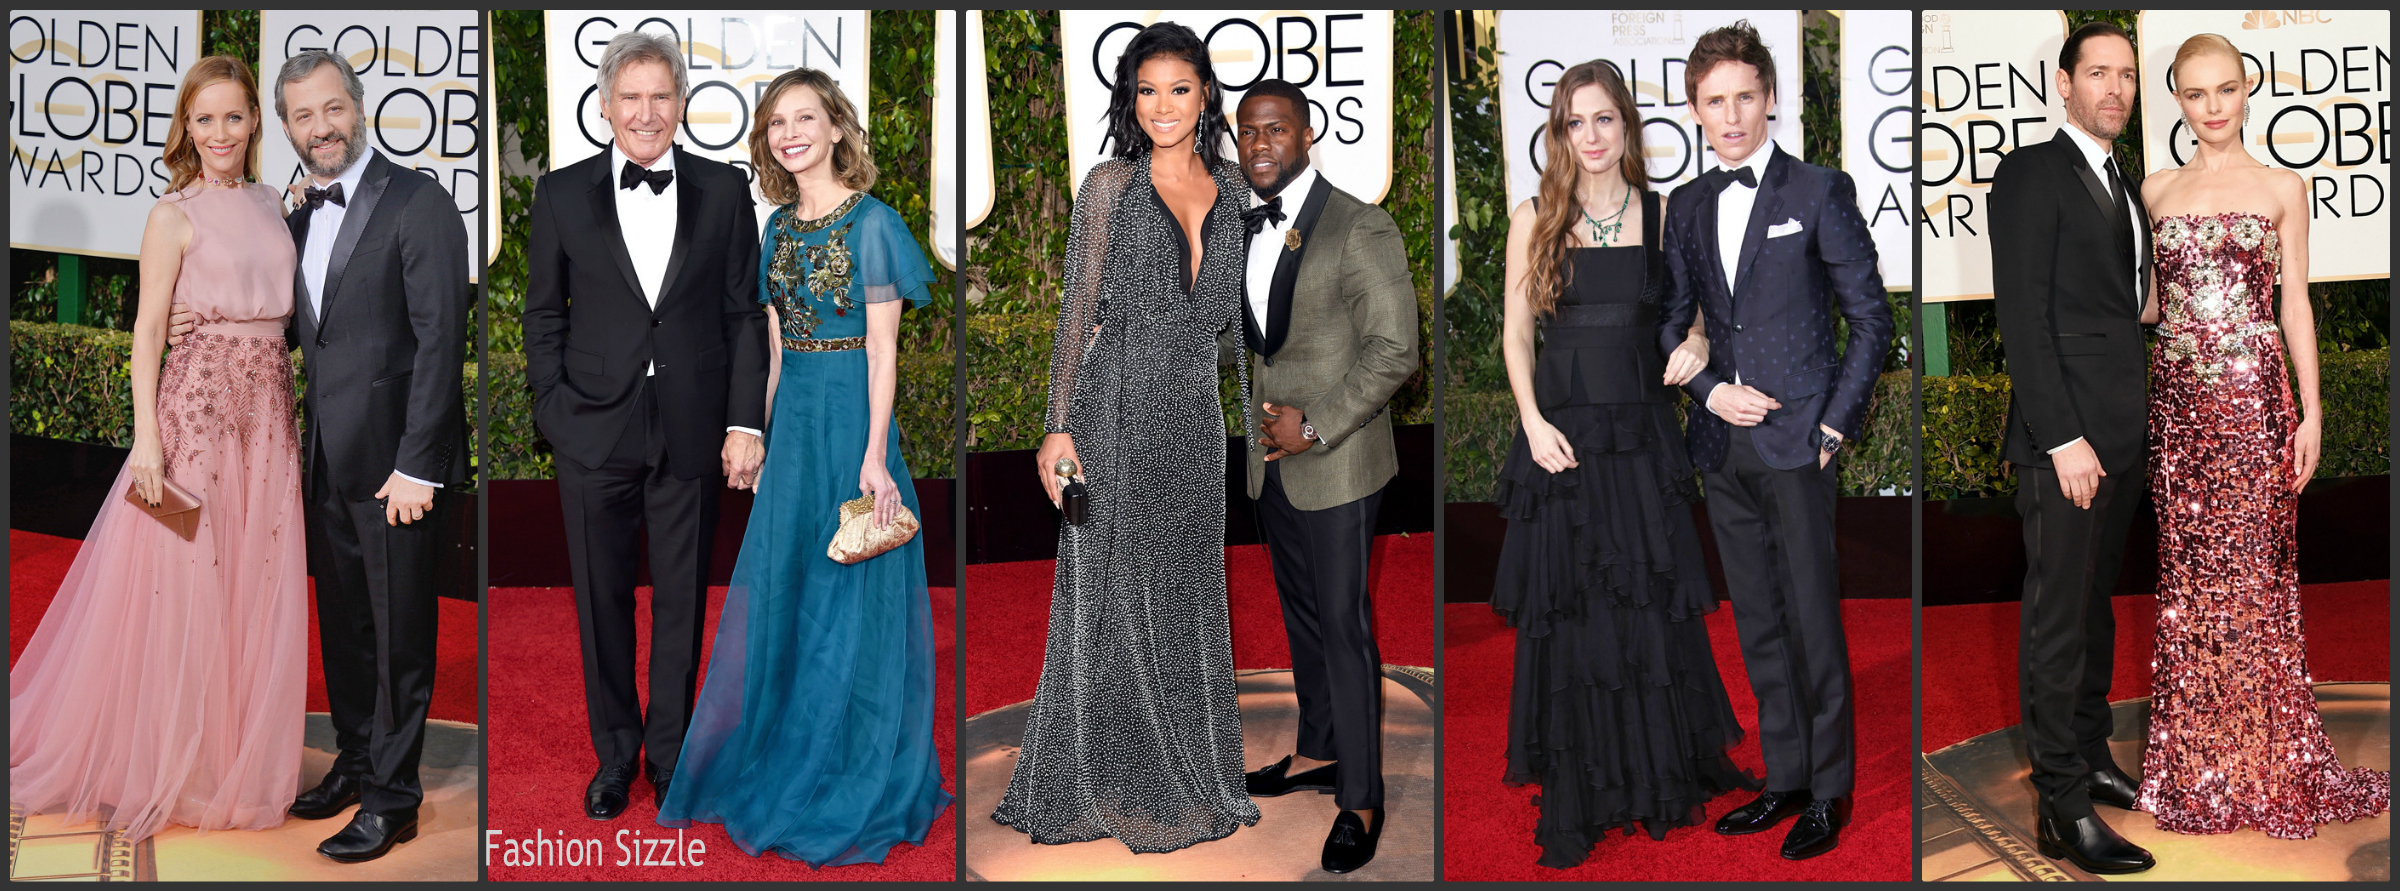 best-dressed-couples-at-the-2016-golden-globe-awards